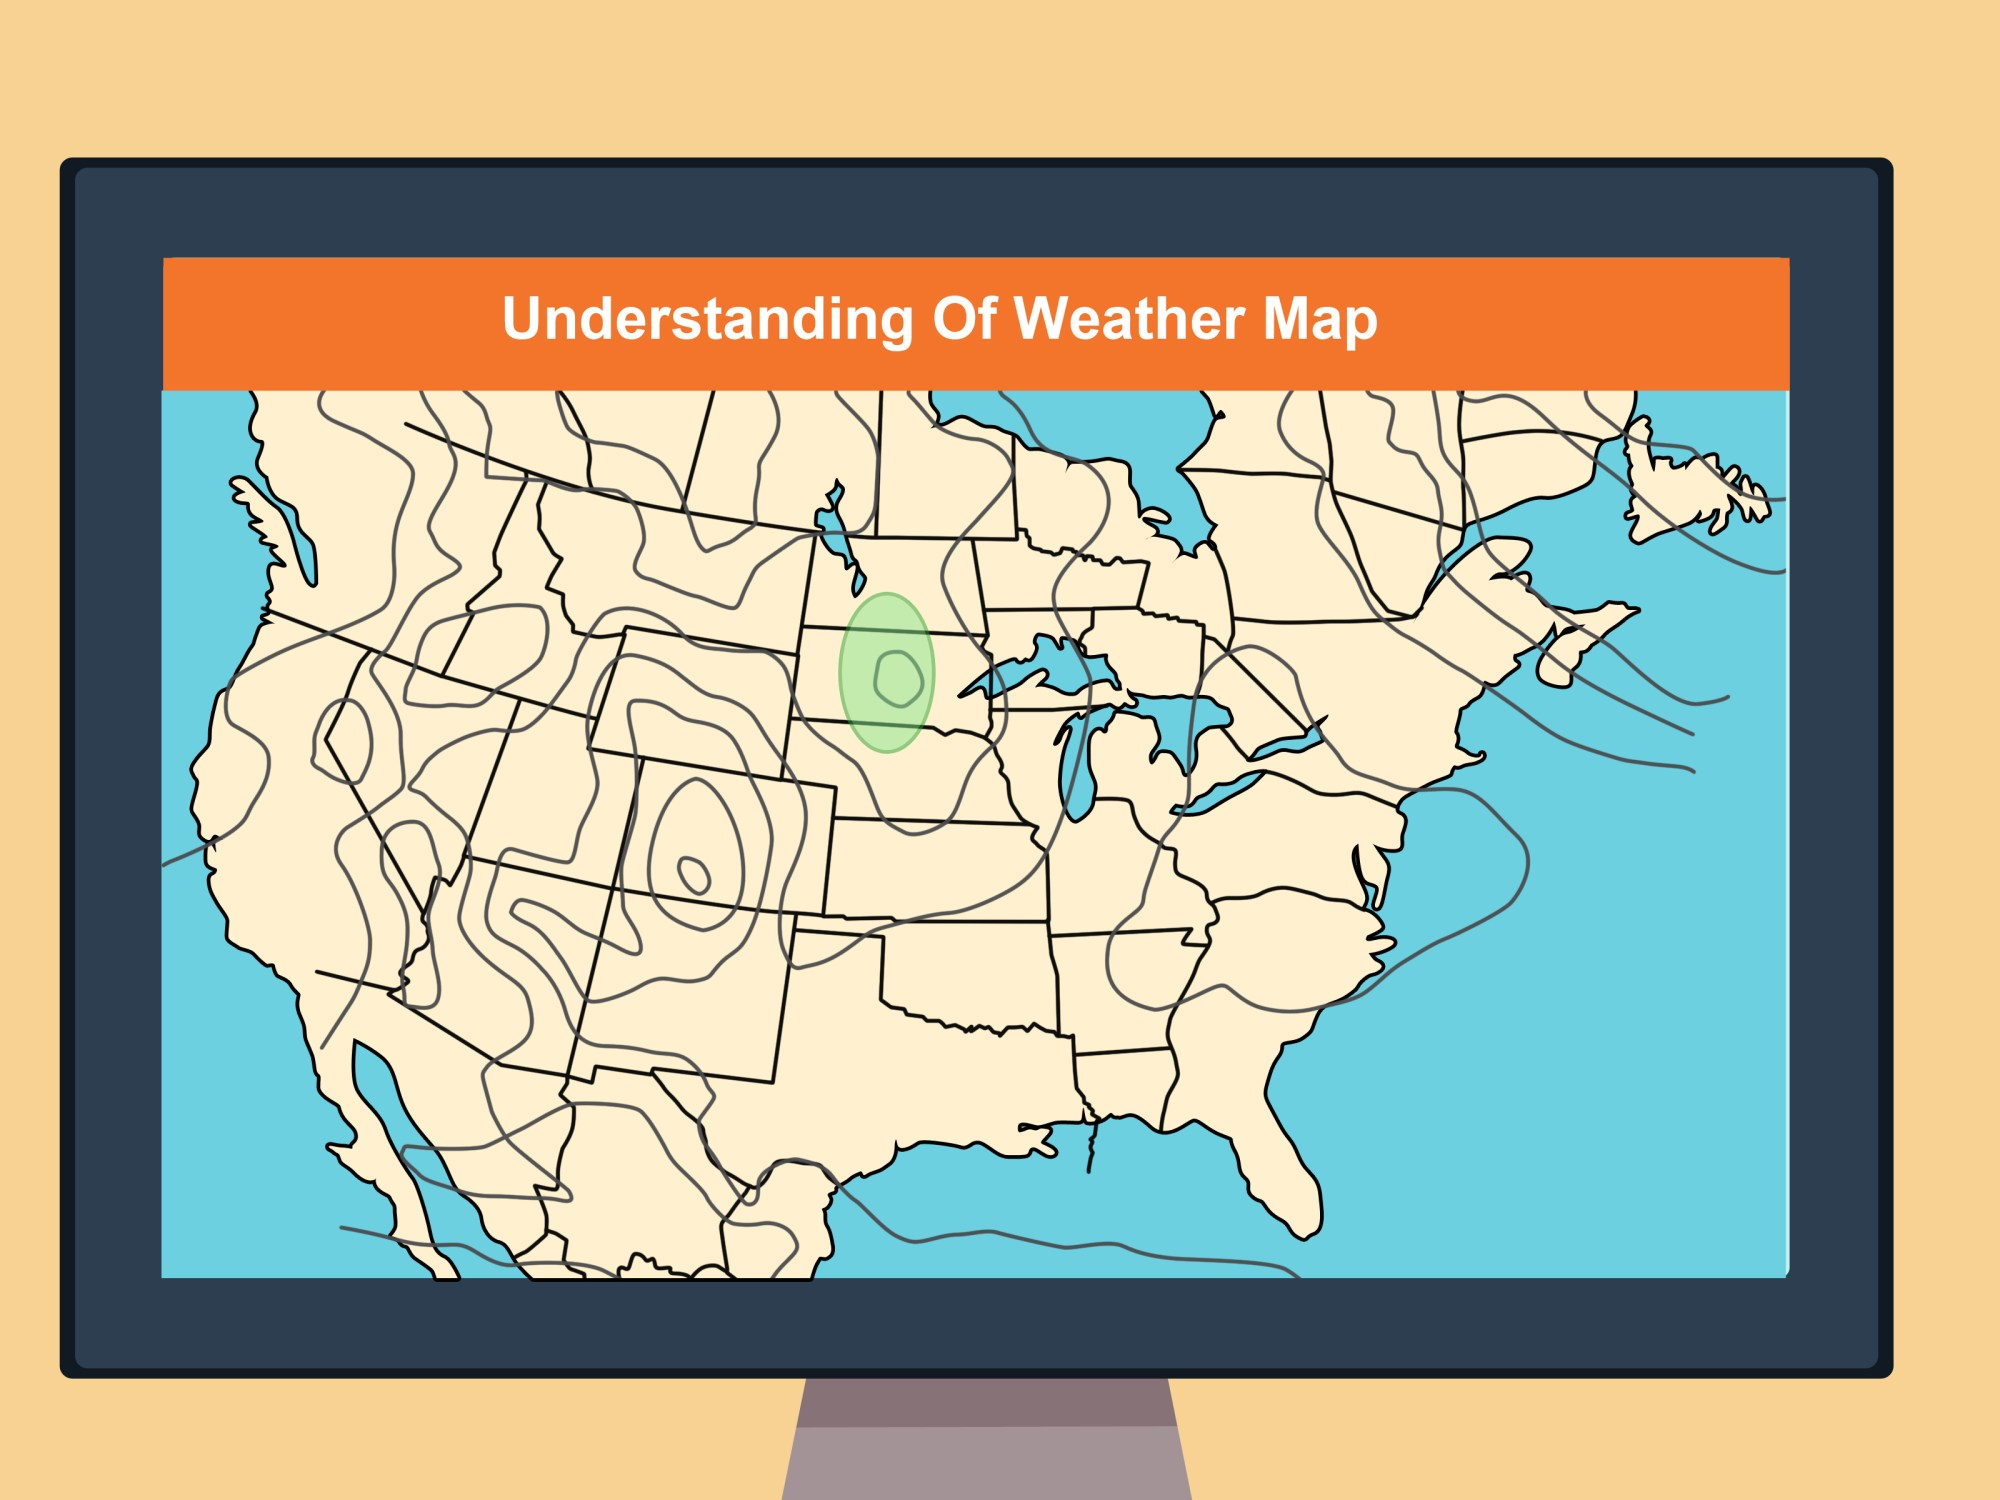 hight resolution of How to Read a Weather Map (with Pictures) - wikiHow